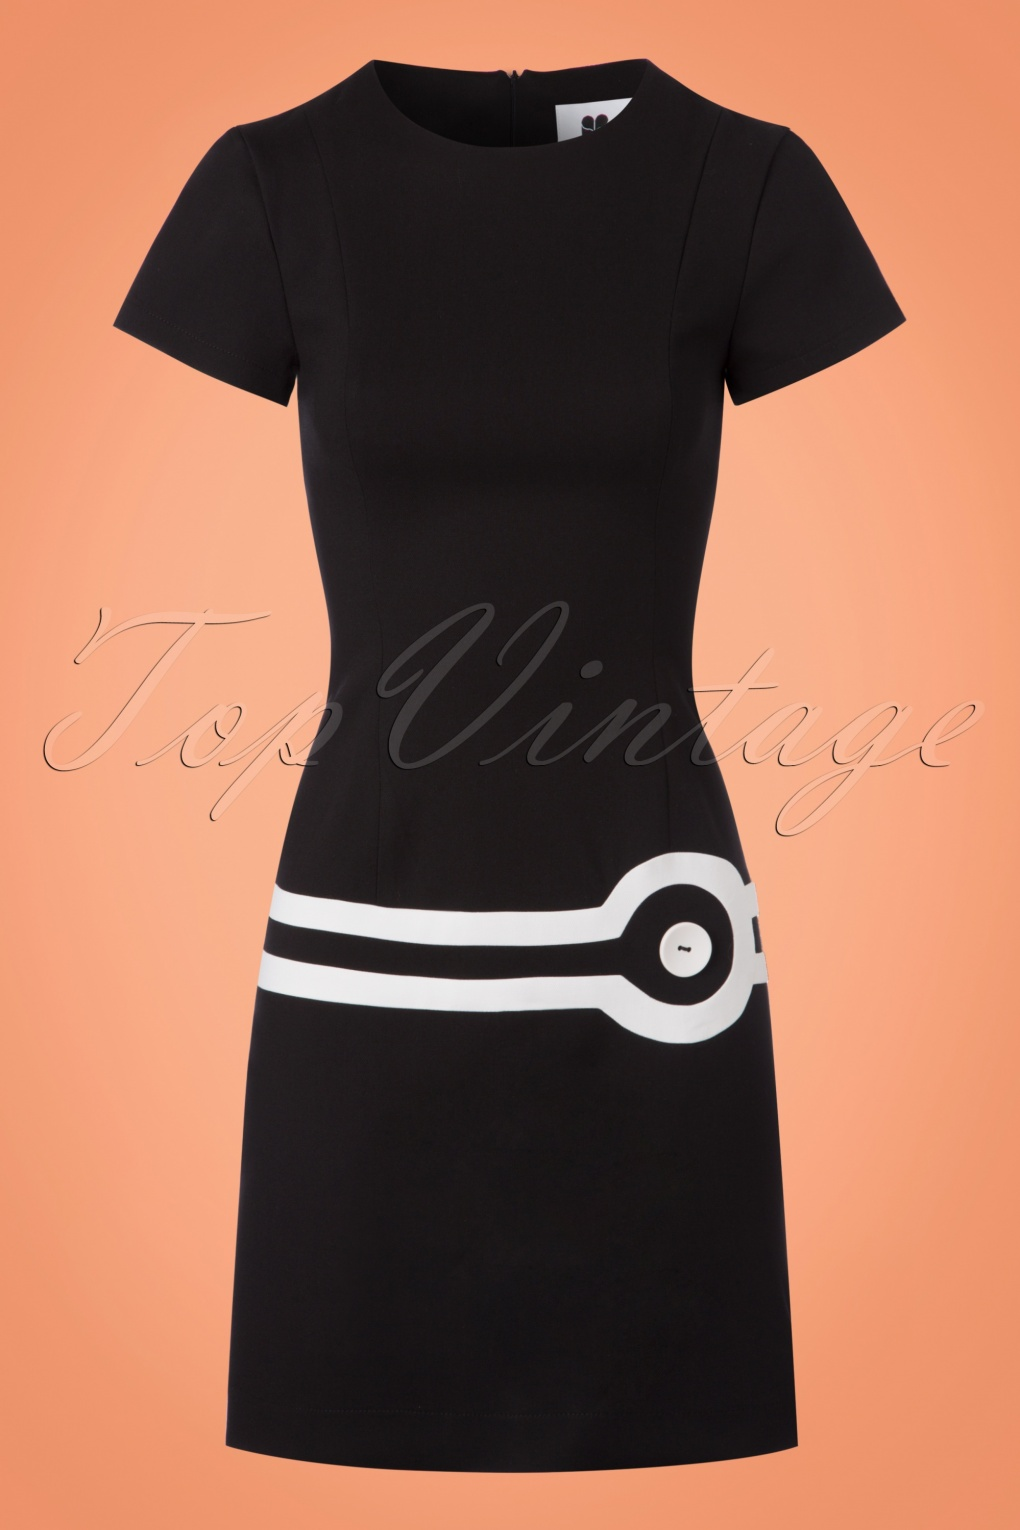 500 Vintage Style Dresses for Sale 60s Circle  A-Line Dress in Black and White £111.87 AT vintagedancer.com